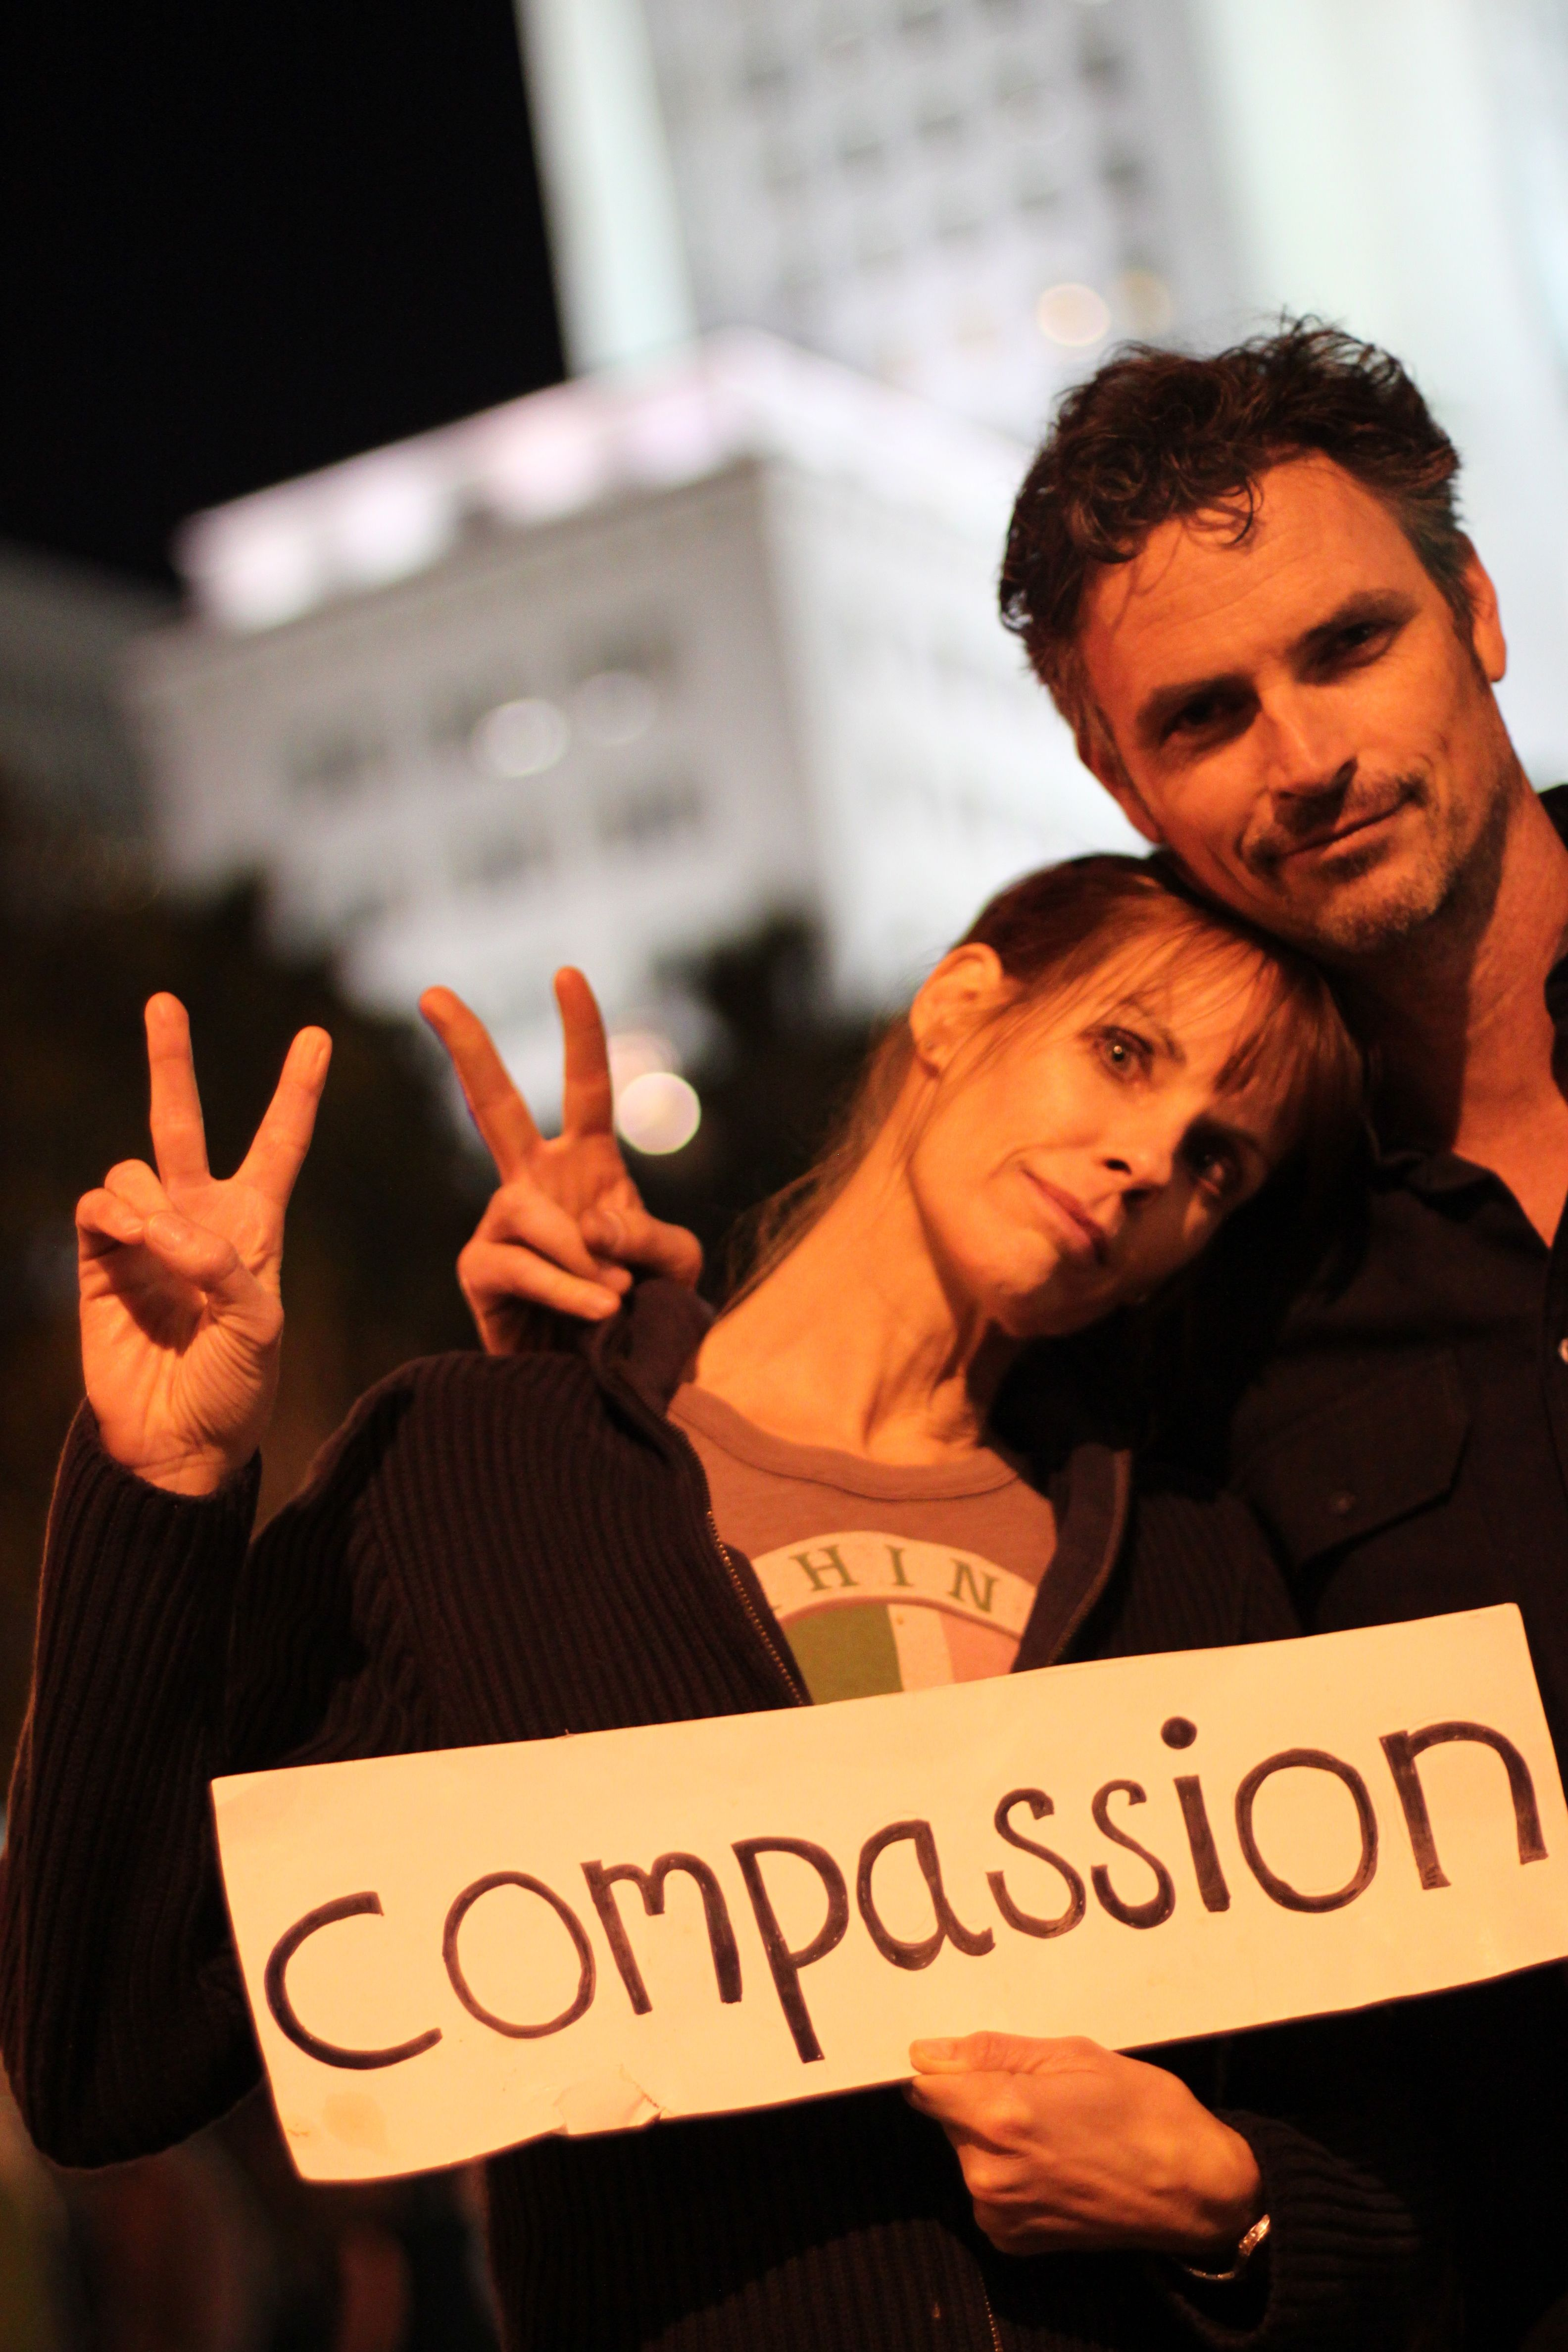 Compassion | Occupy LA